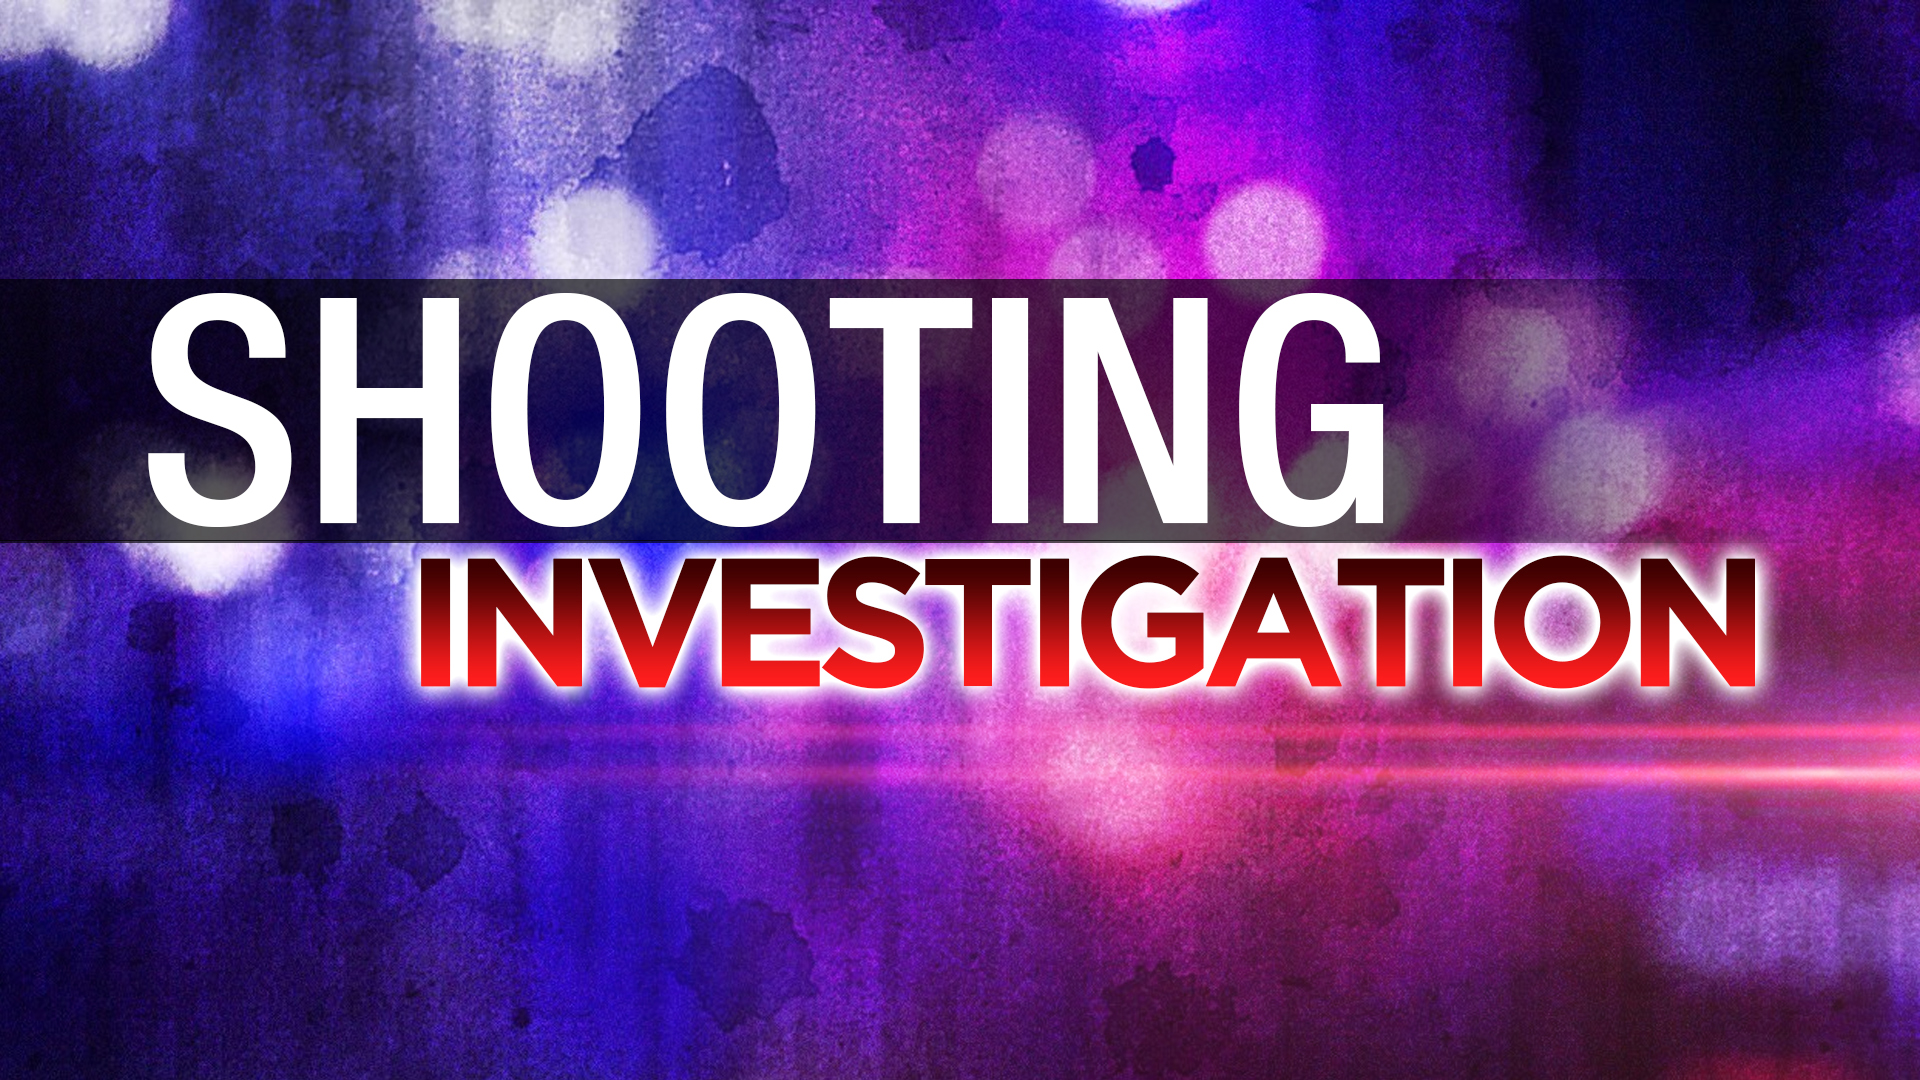 SHOOTING INVESTIGATION_1535258168595.jpg-118809318.jpg